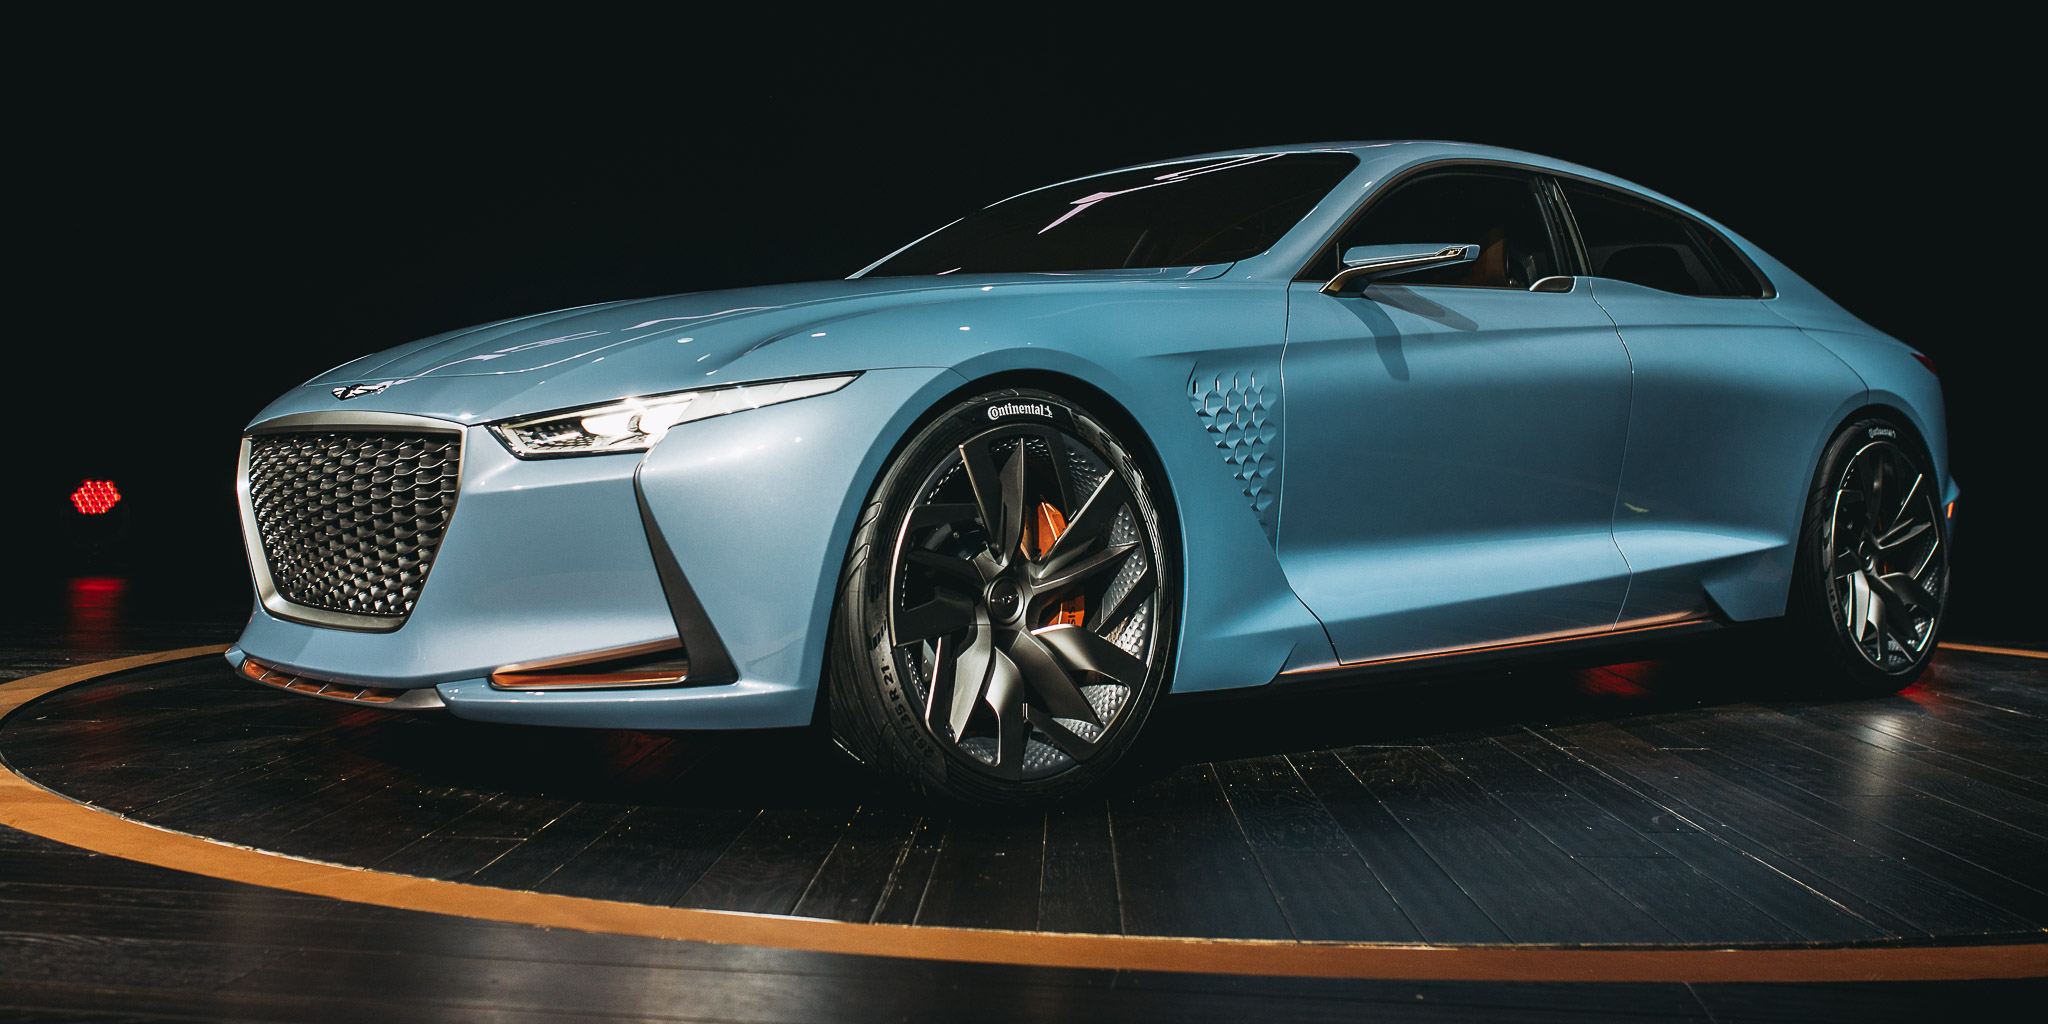 This Genesis New York Concept Is A Sleek Glimpse At